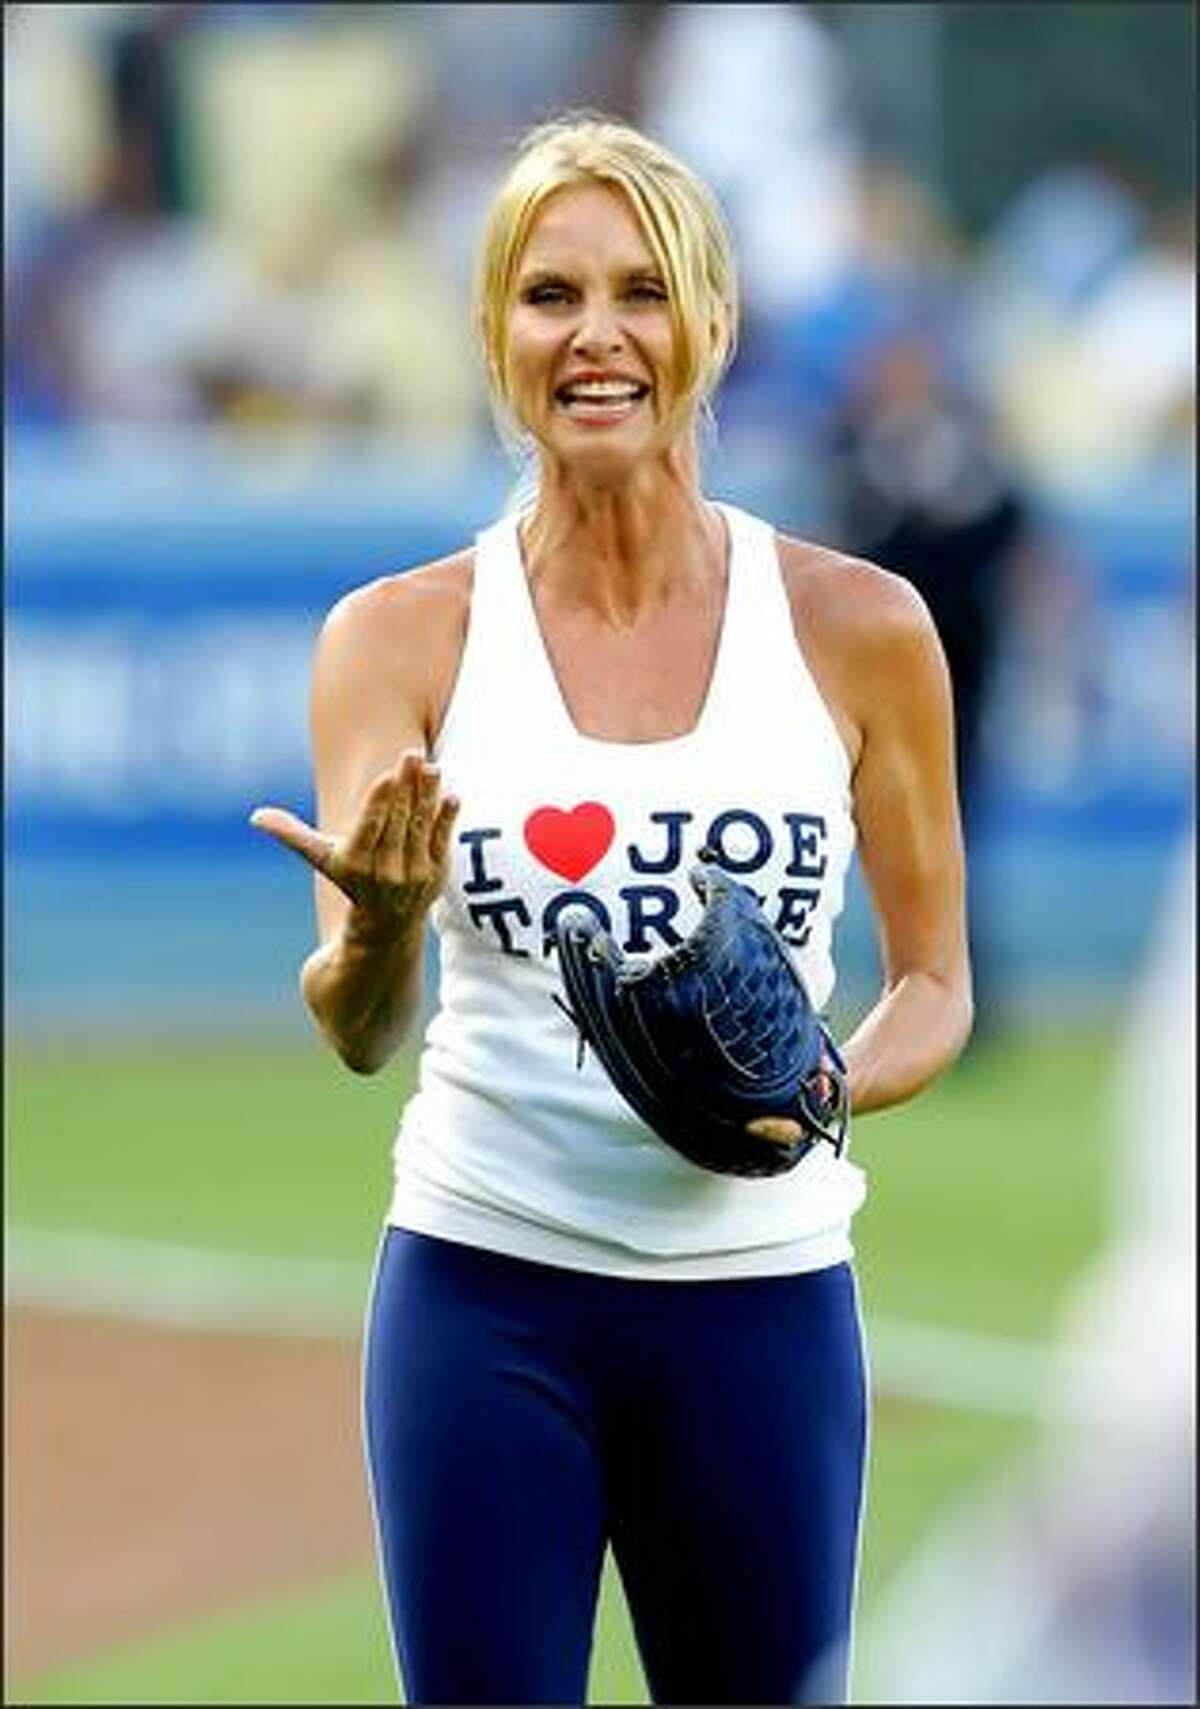 Actress Niccolite Sheridan walks along the field before throwing out the first pitch before the game between the San Francisco Giants and the Los Angeles Dodgers at Dodger Stadium in Los Angeles, California.